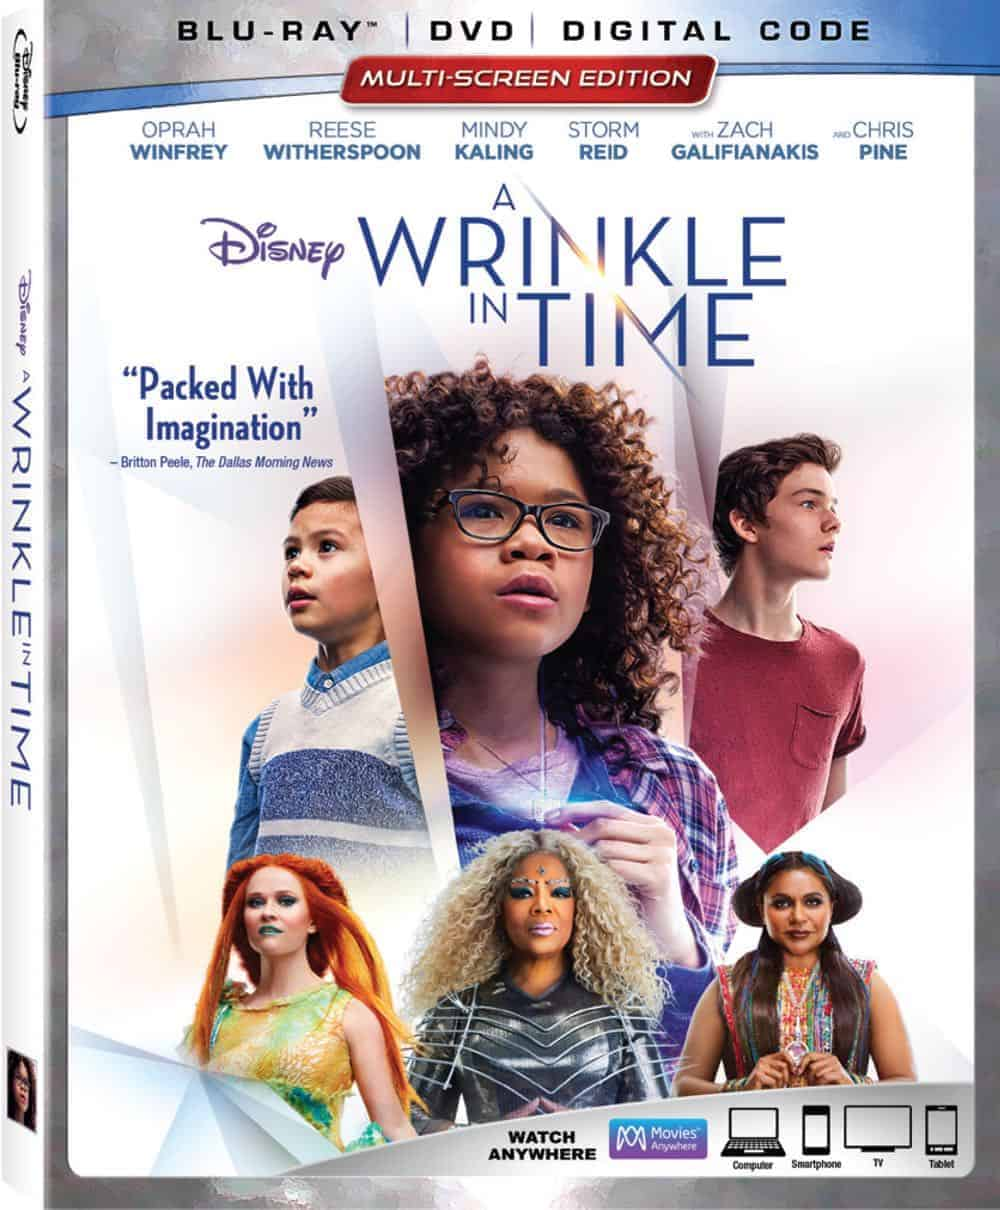 A Wrinkle In Time Blu-ray + DVD + Digital Code Cover